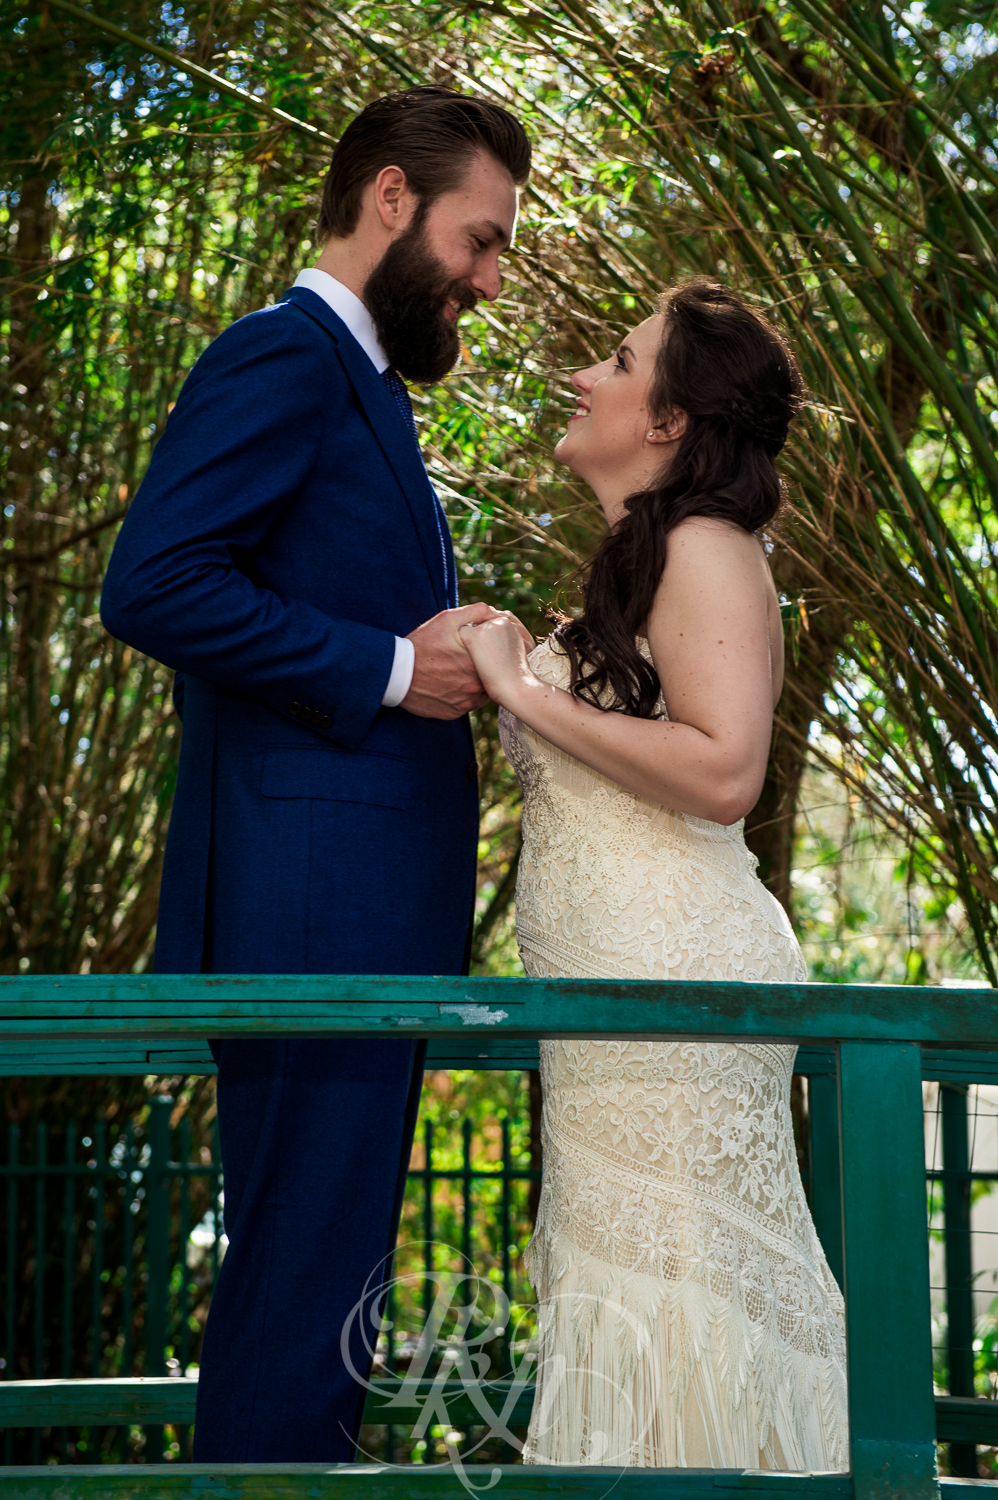 Callan & John - Florida Wedding Photography - Monet Monet - RKH Images -37.jpg